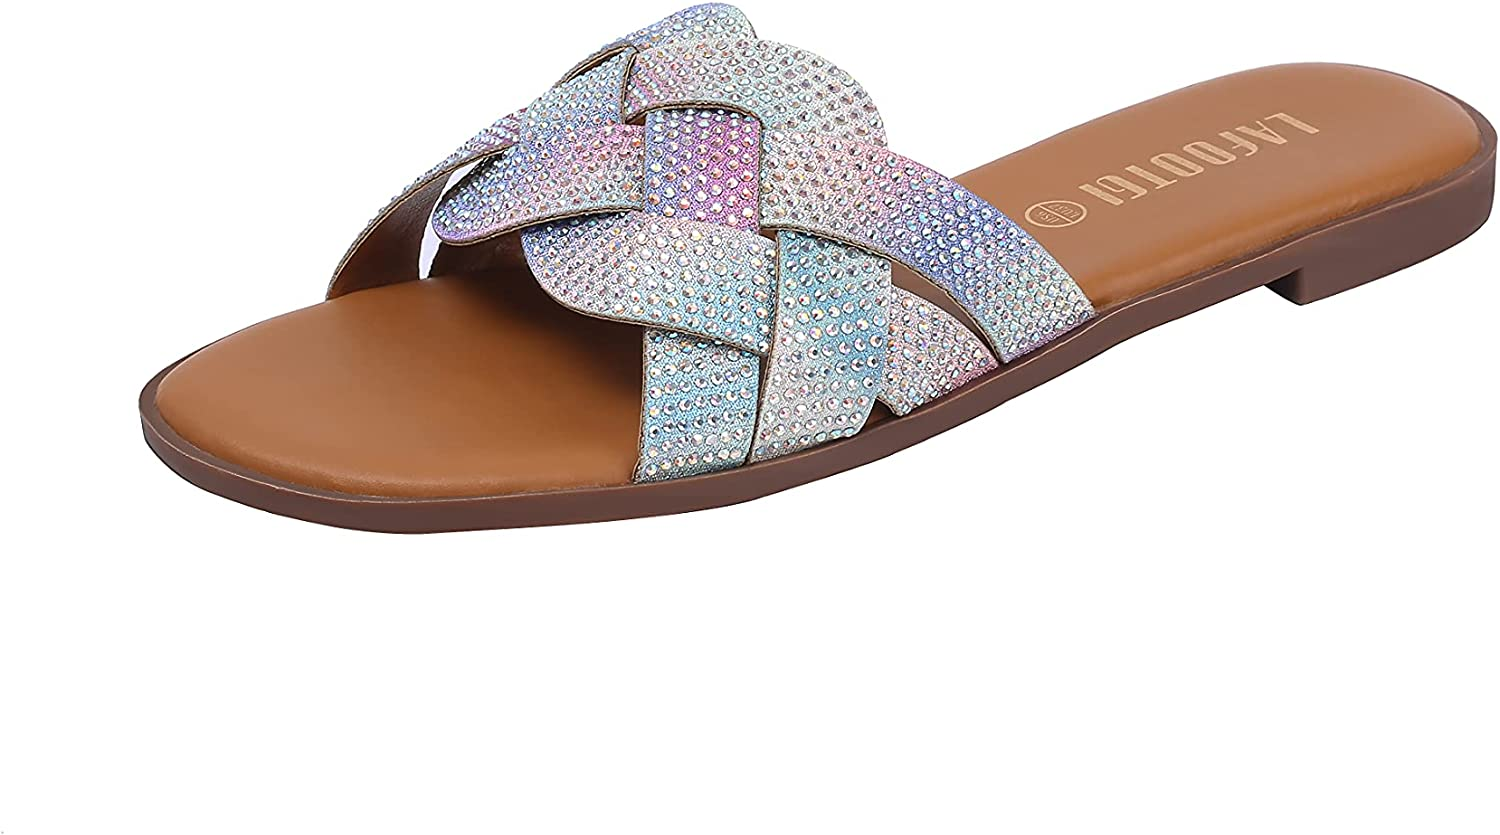 Glitter Rhinestone Square Sandals For Women With Open Toe Summer Casual Slide Shoes